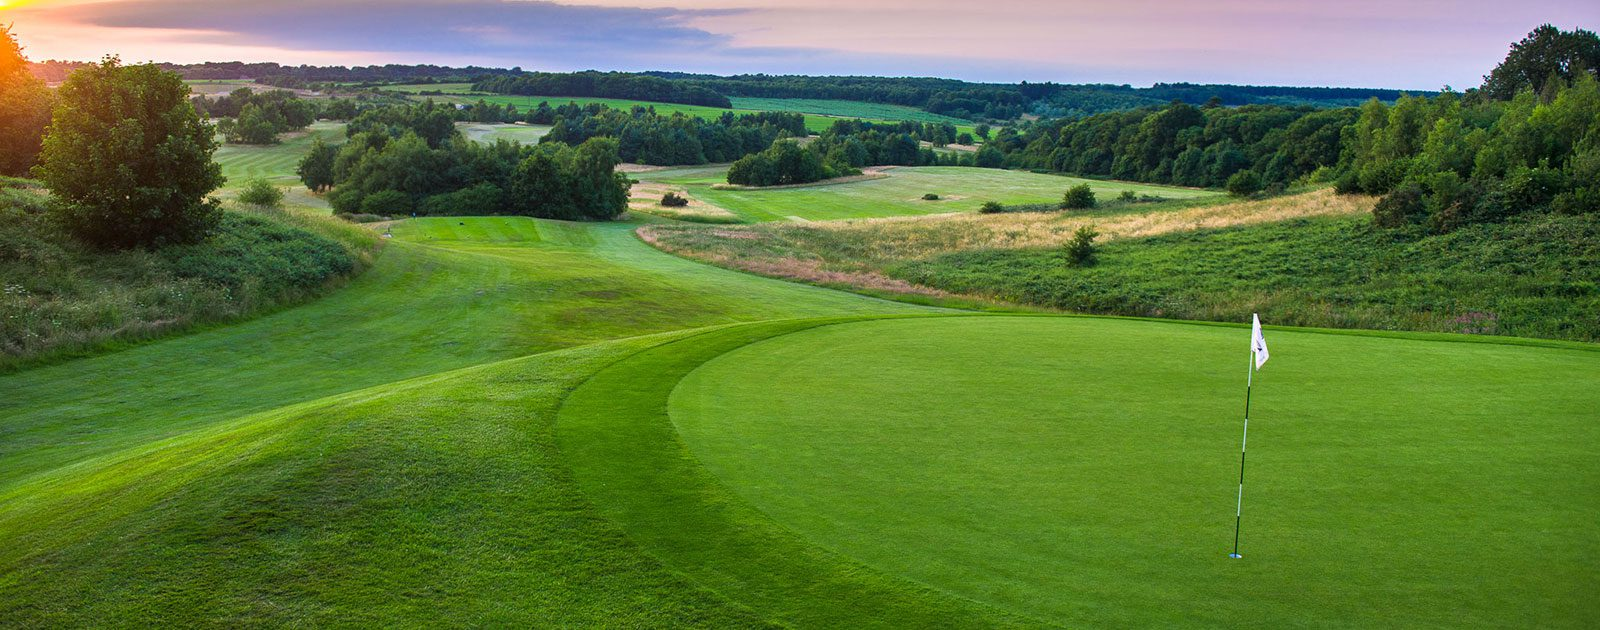 Ramsdale course